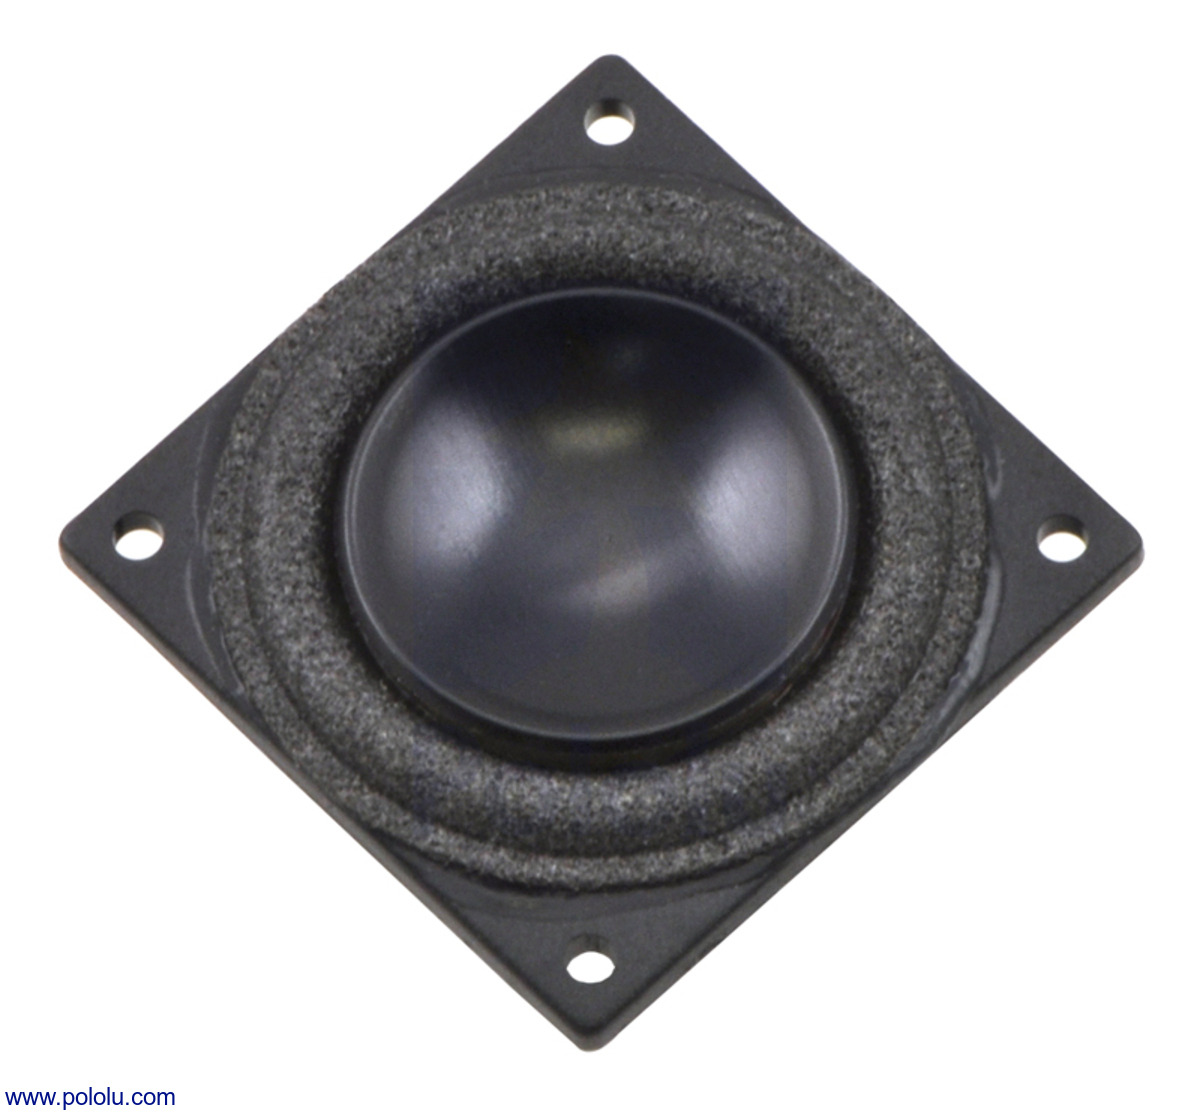 Pololu 18mm Speaker 4 Ohm 20 W Piezo Sounder Detection Circuit This Helps Interface A Louder New